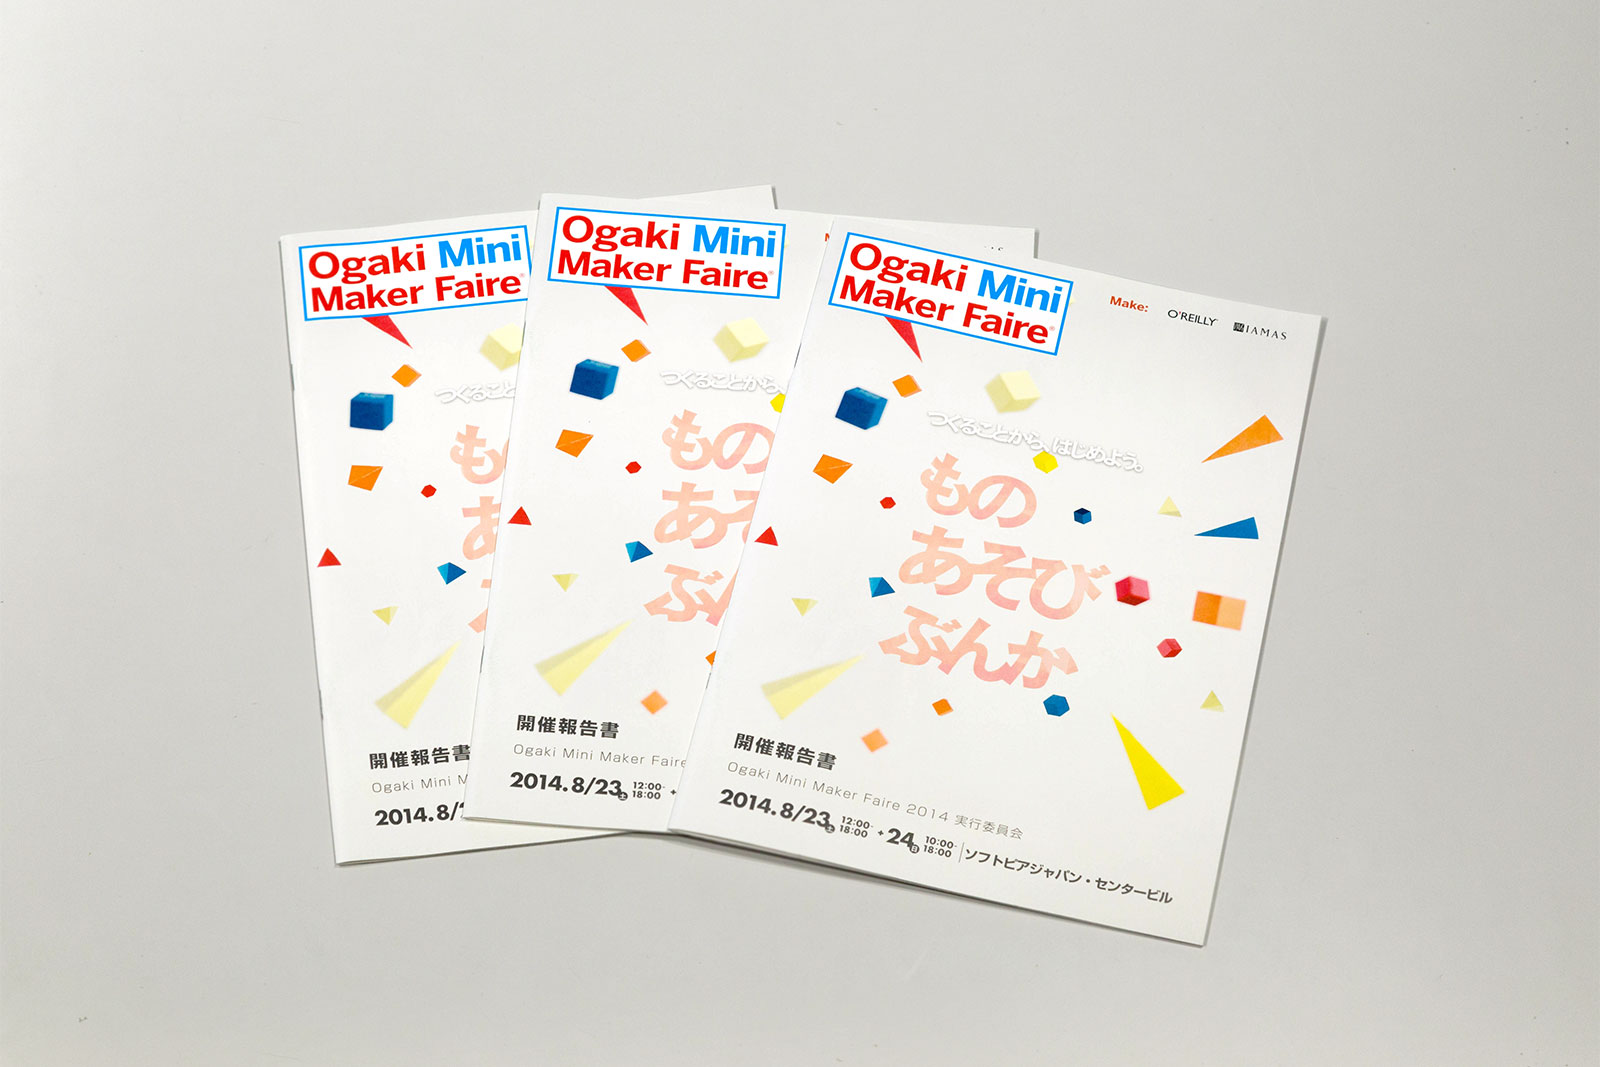 Ogaki Mini Maker Faire 2014イメージ